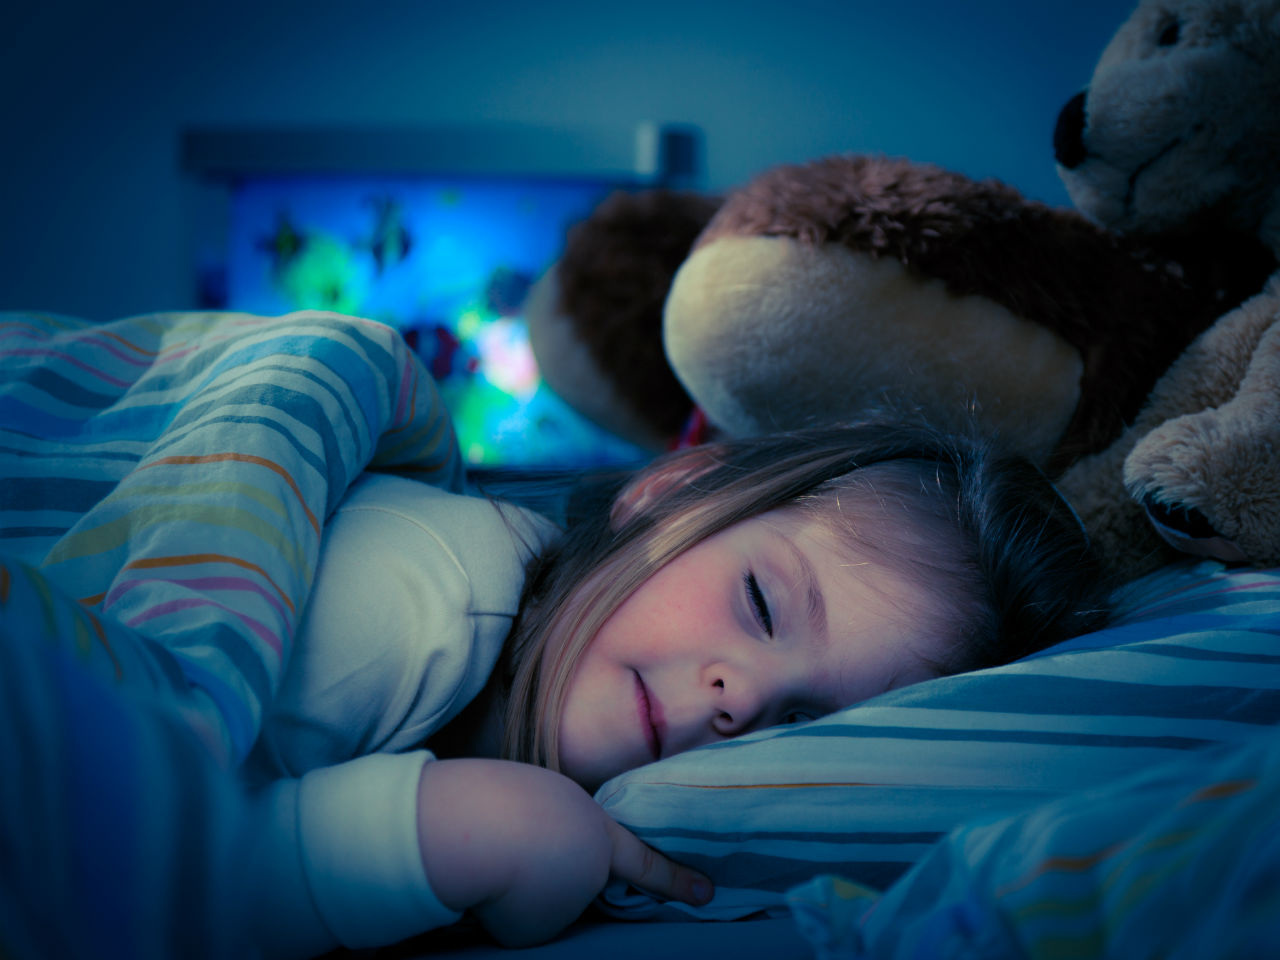 Little girl sleeping in bed with a stuffed animal